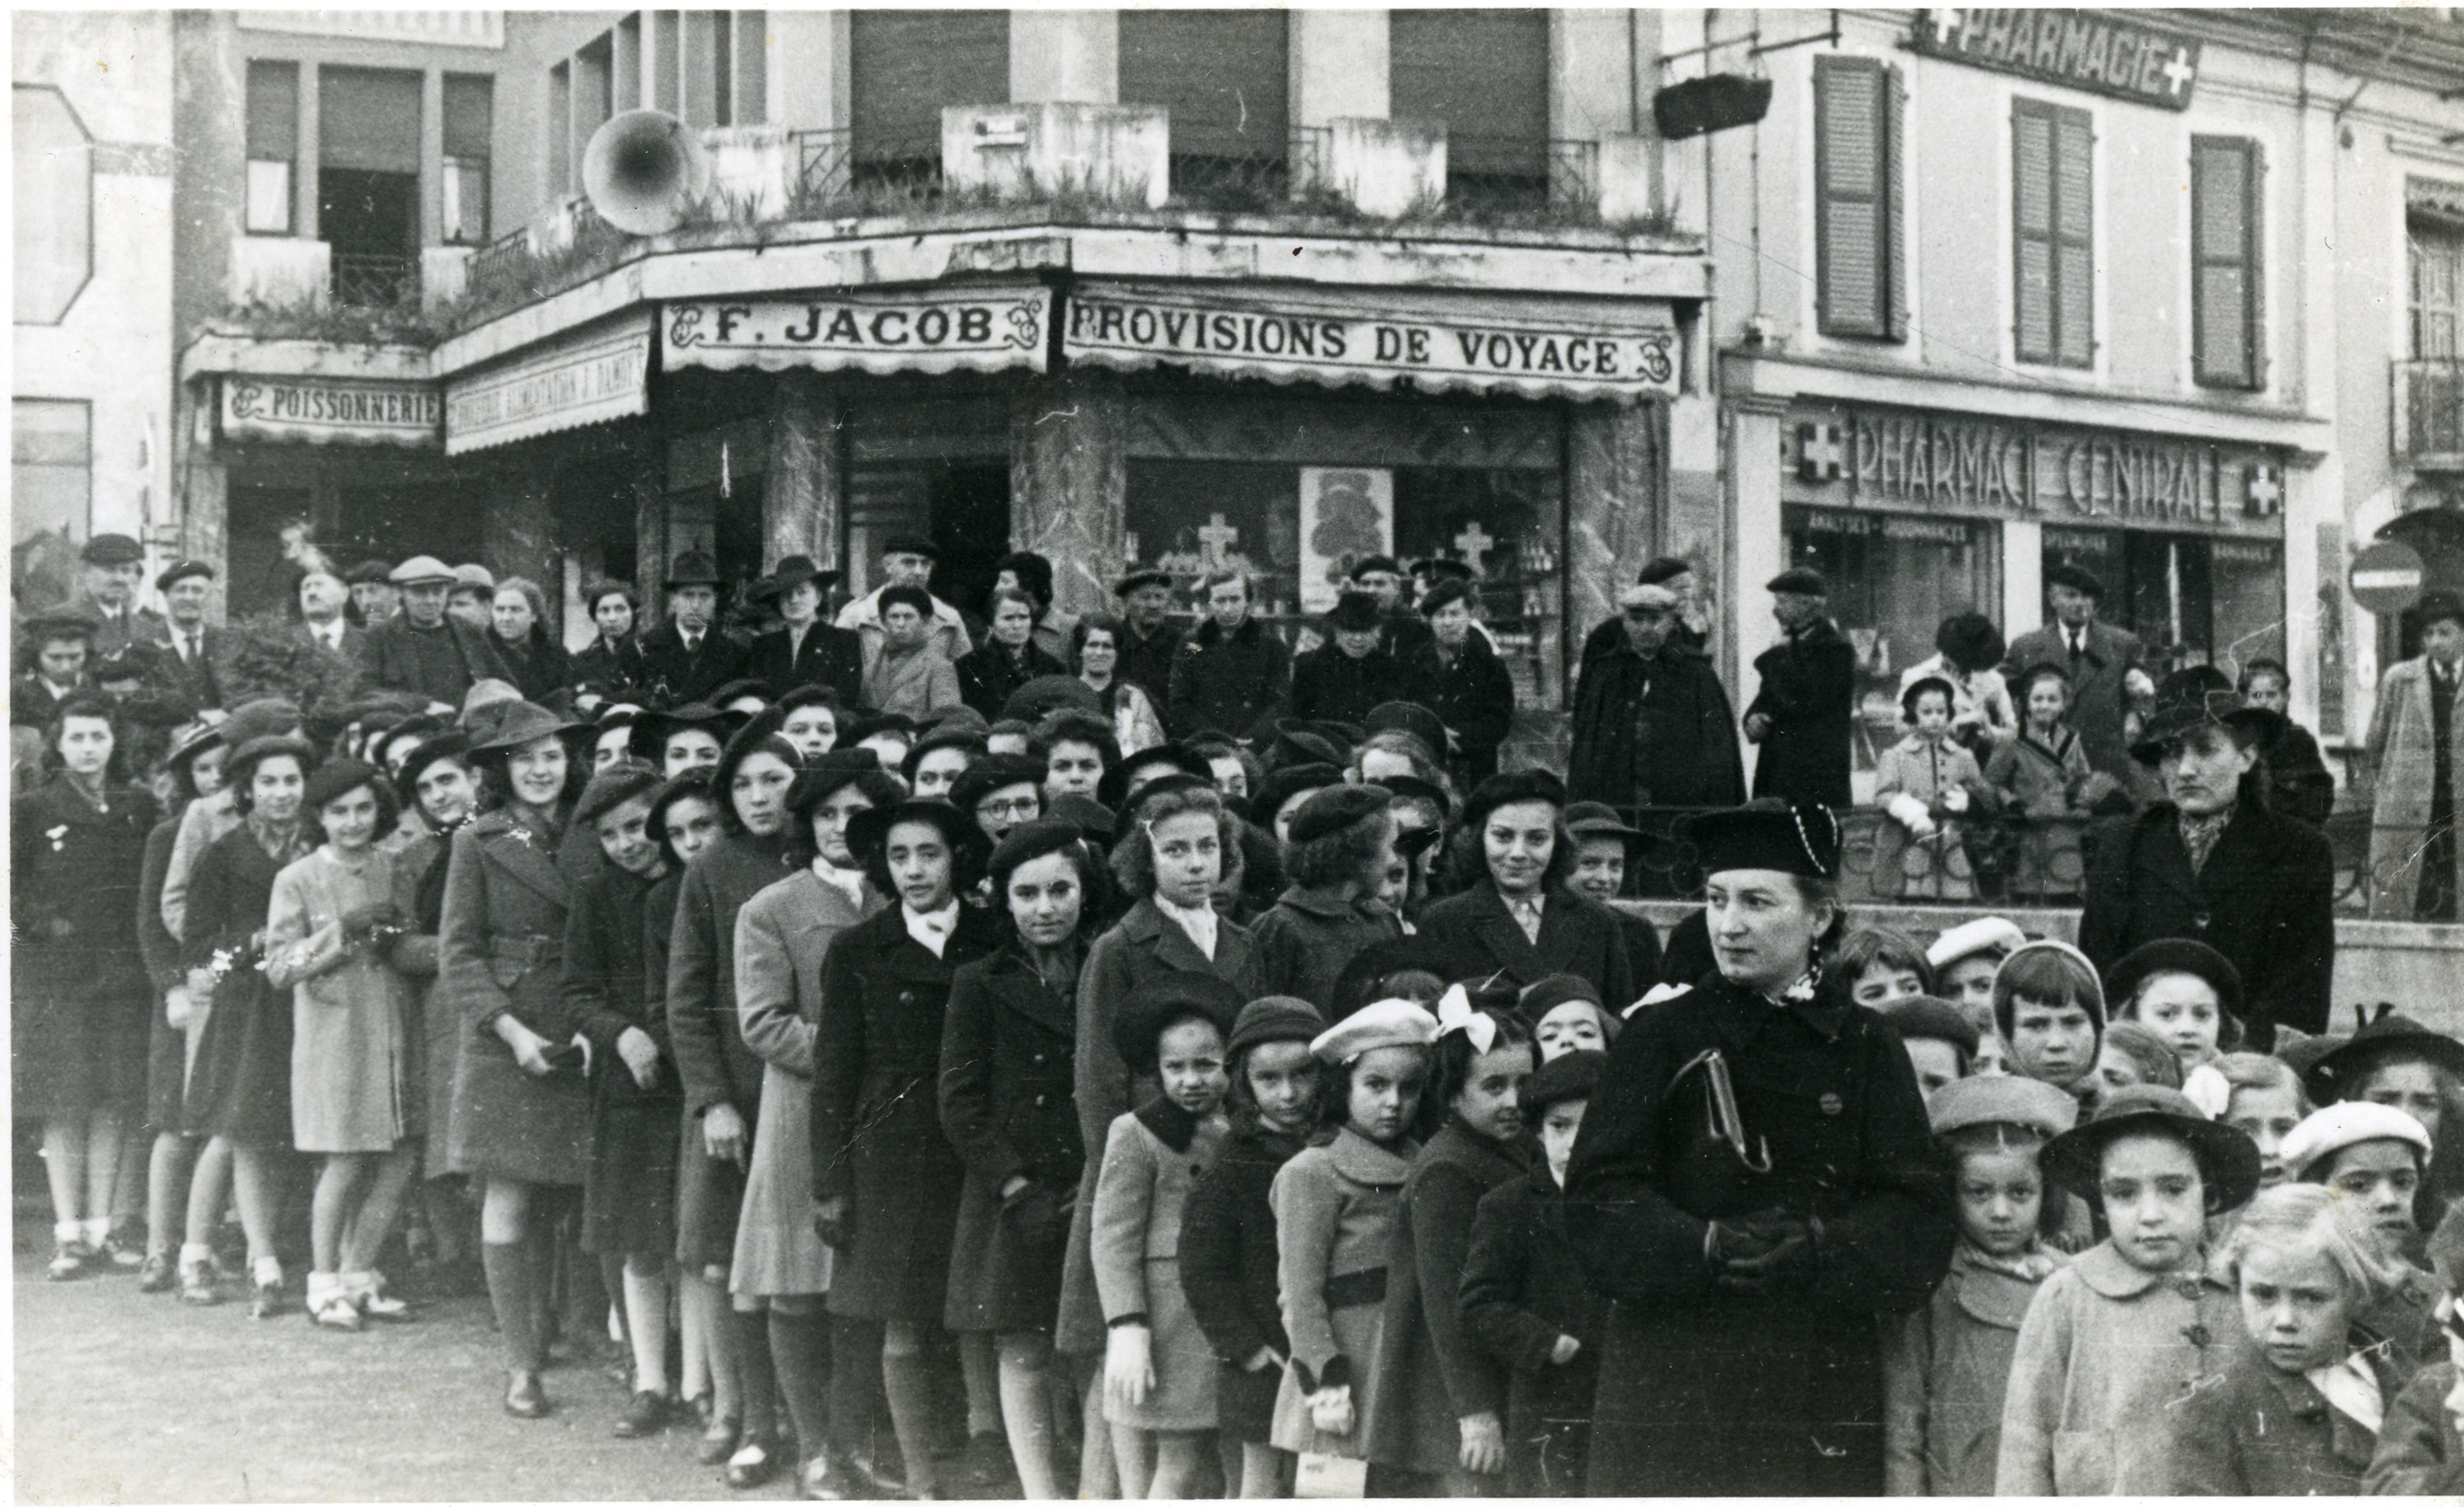 Ora standing in line waiting to greet Marshal Petain in Lourdes.  Ora is standing in the front row, the third child behind the woman dressed in black, holding a purse.